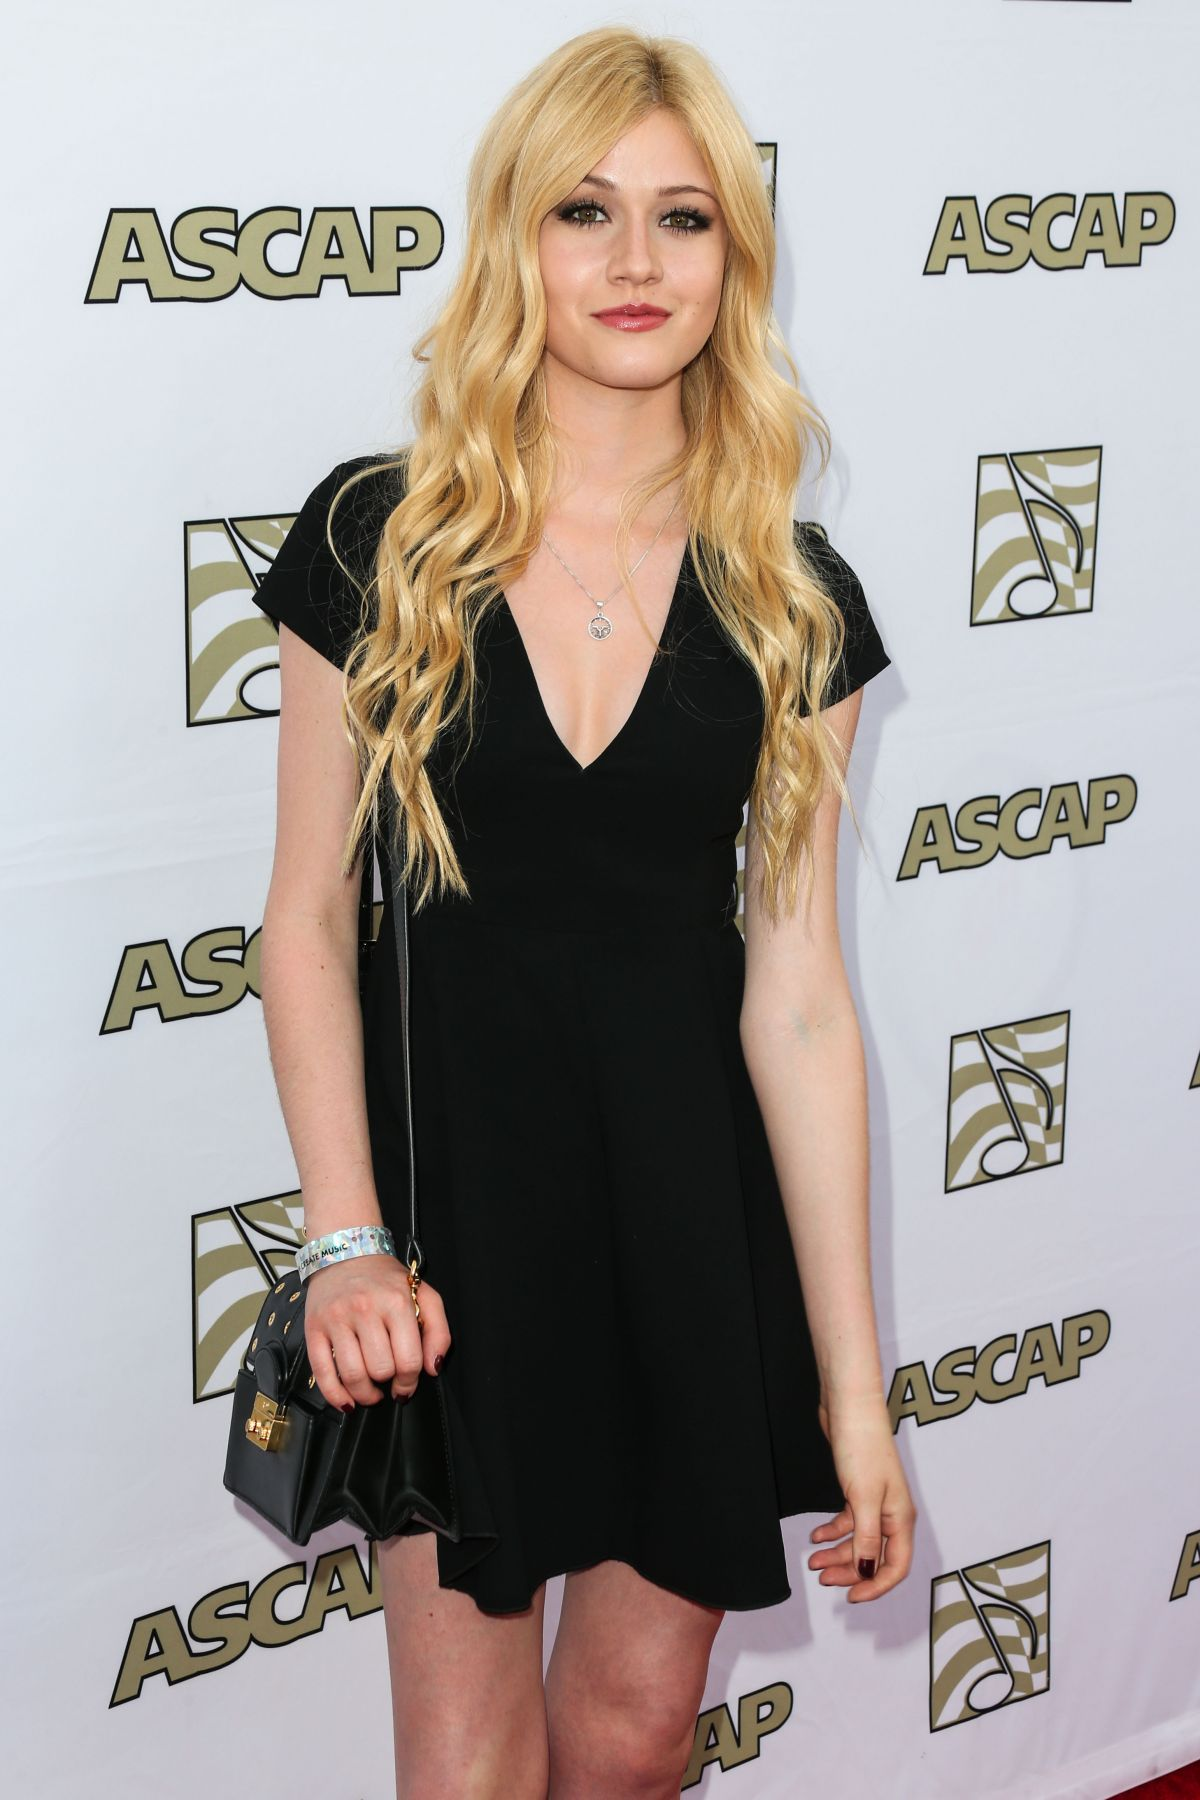 KATHERINE MCNAMARA at 2015 Ascap Pop Music Awards in Los Angeles